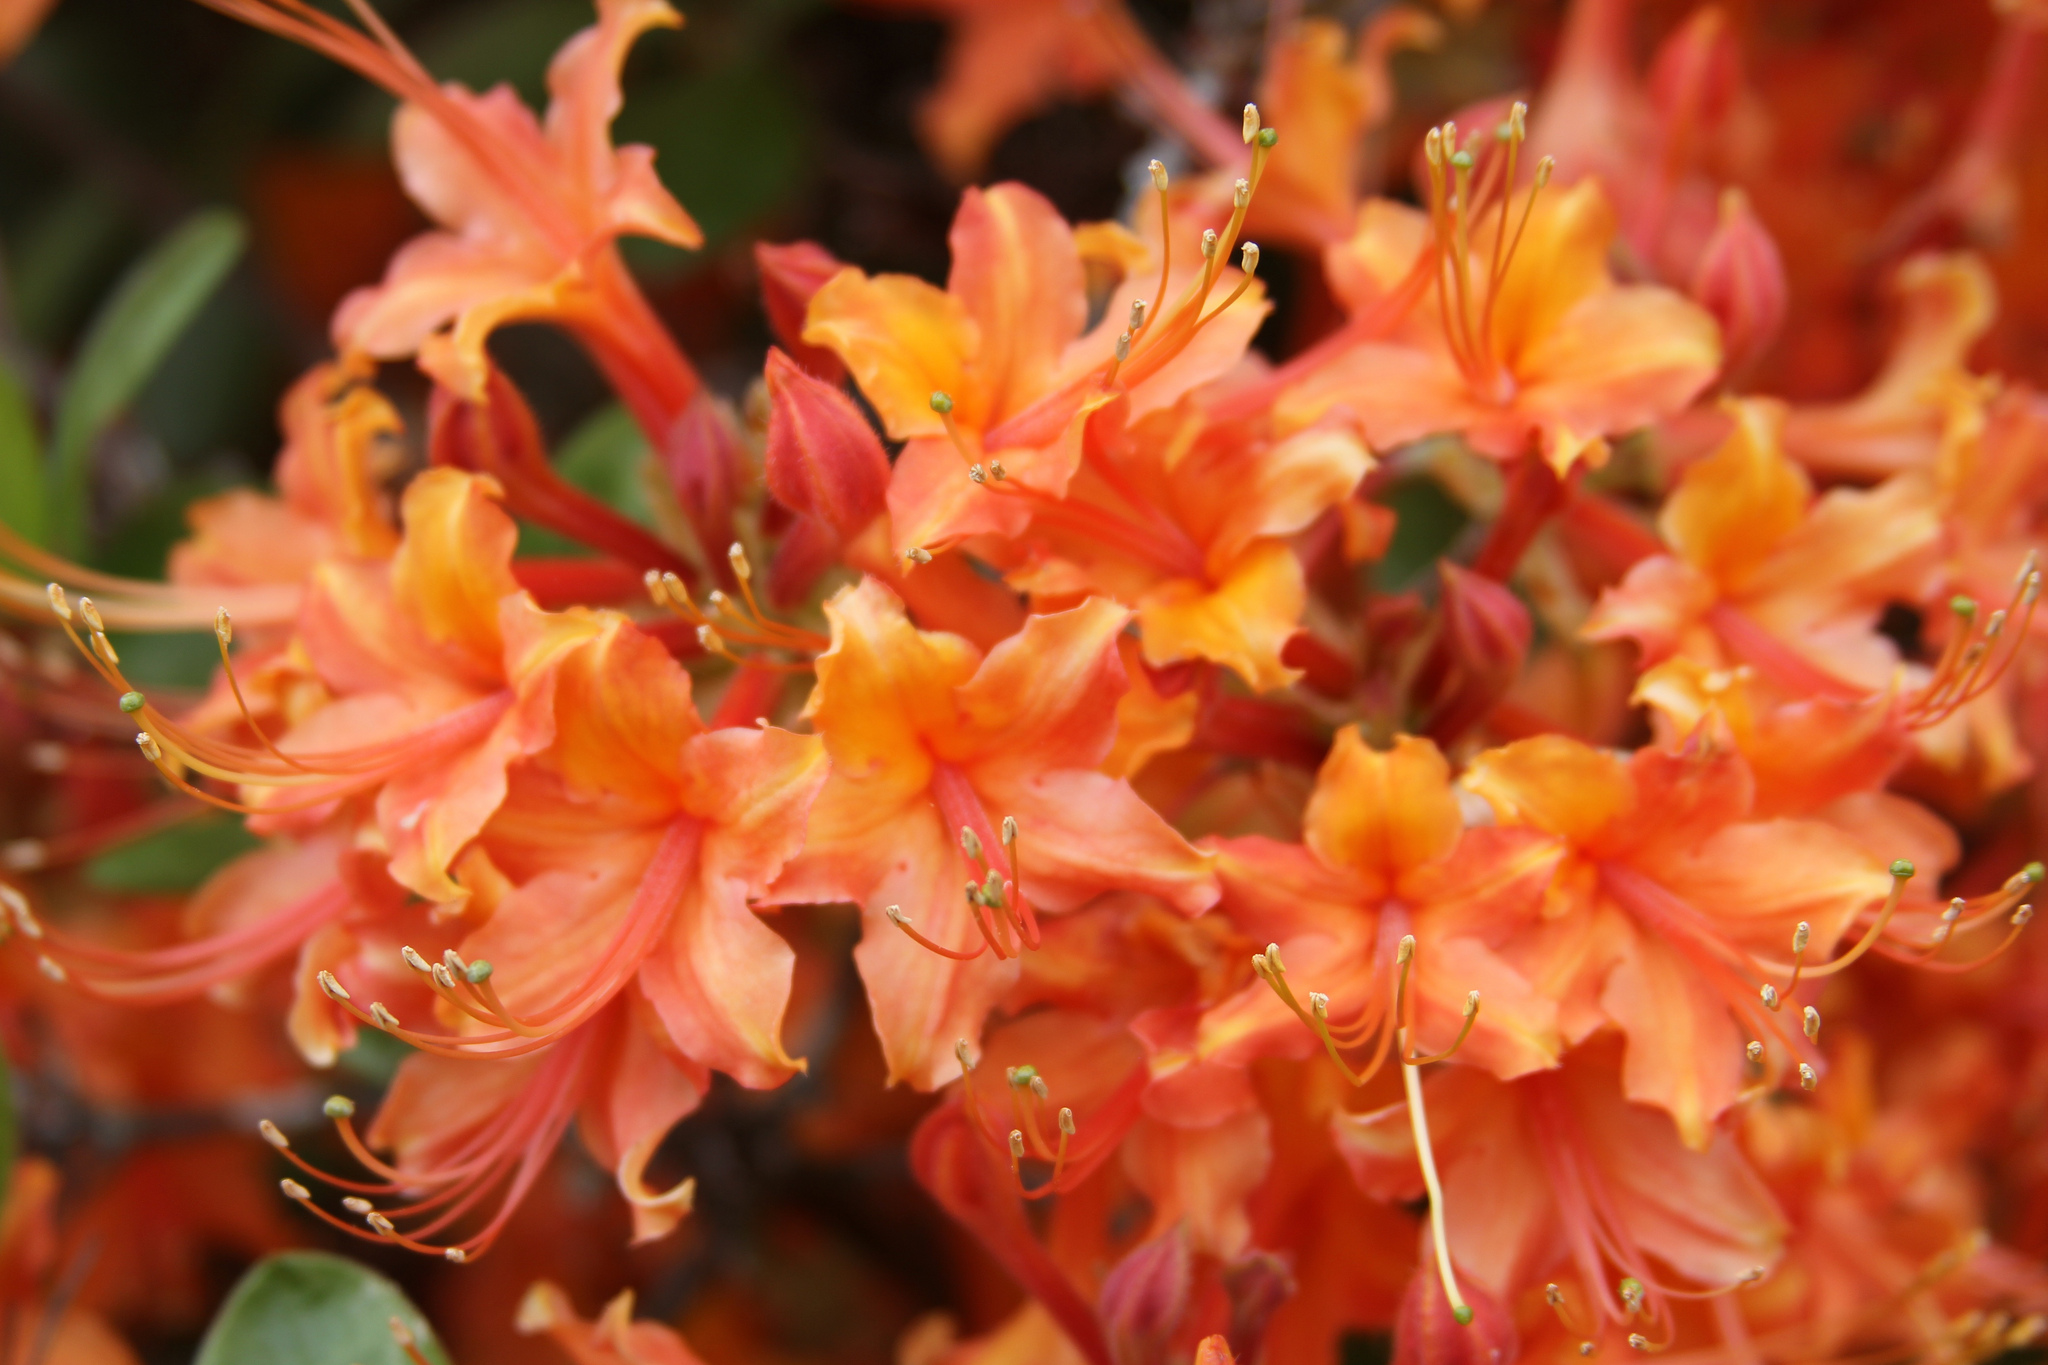 Native azaleas typically have tubular flowers with long stamens that extend beyond their petals. University of Georgia scientist Carol Robacker is studying many of the native azaleas that grow in the Piedmont region to determine which ones are adapted to Georgia.